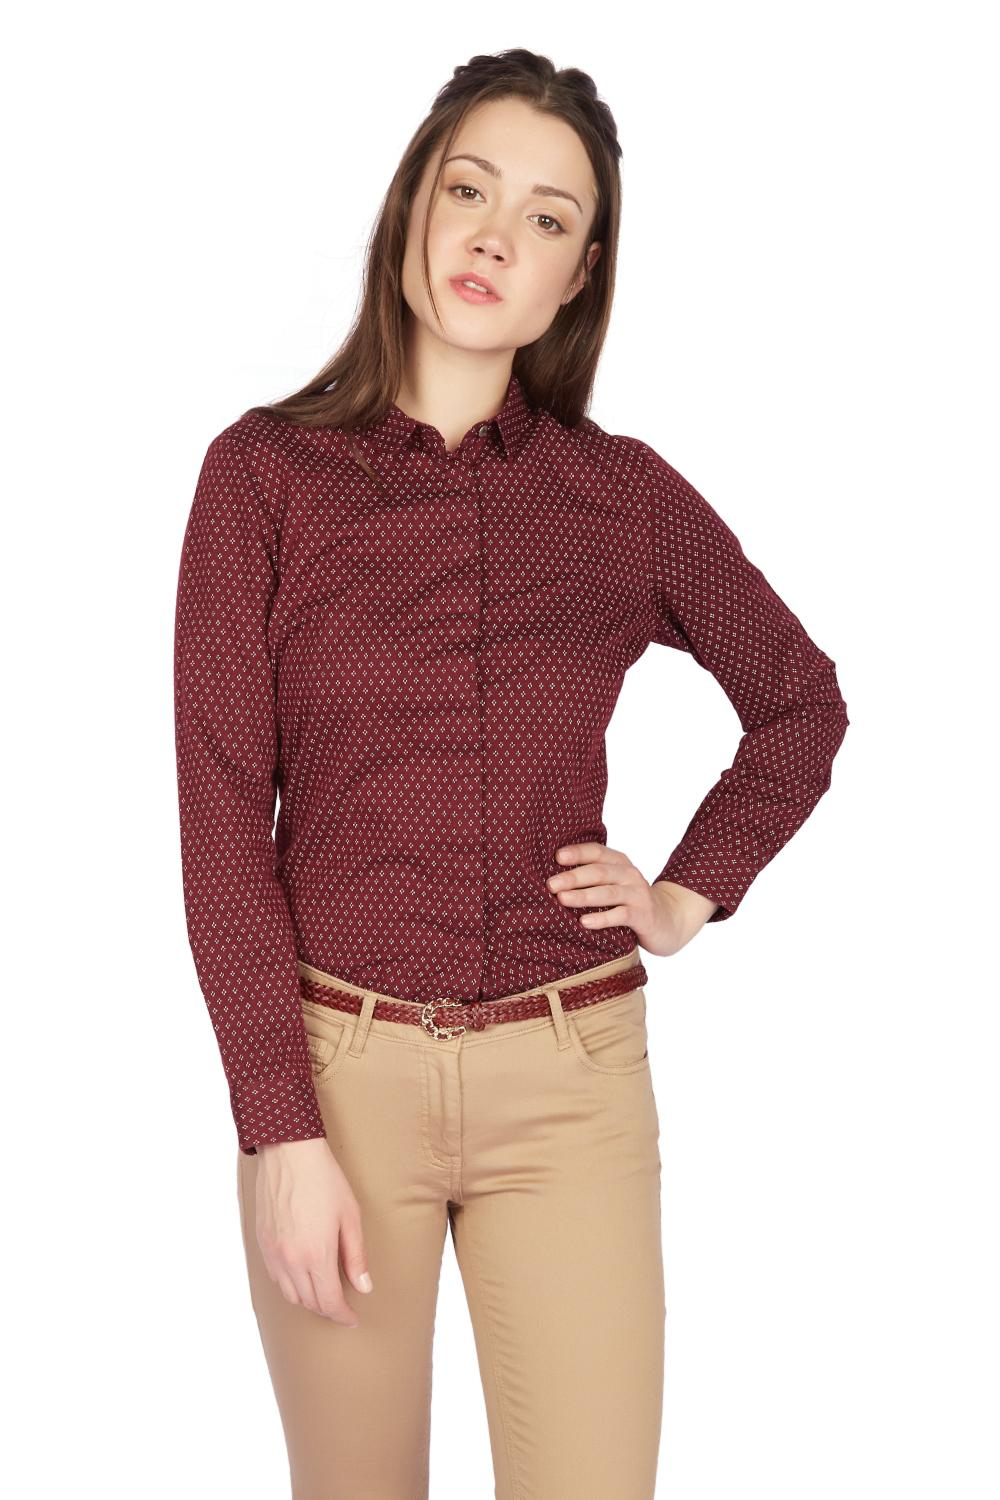 2021fc3d596050 Solly Shirts & Blouses, Allen Solly Maroon Shirt for Women at ...